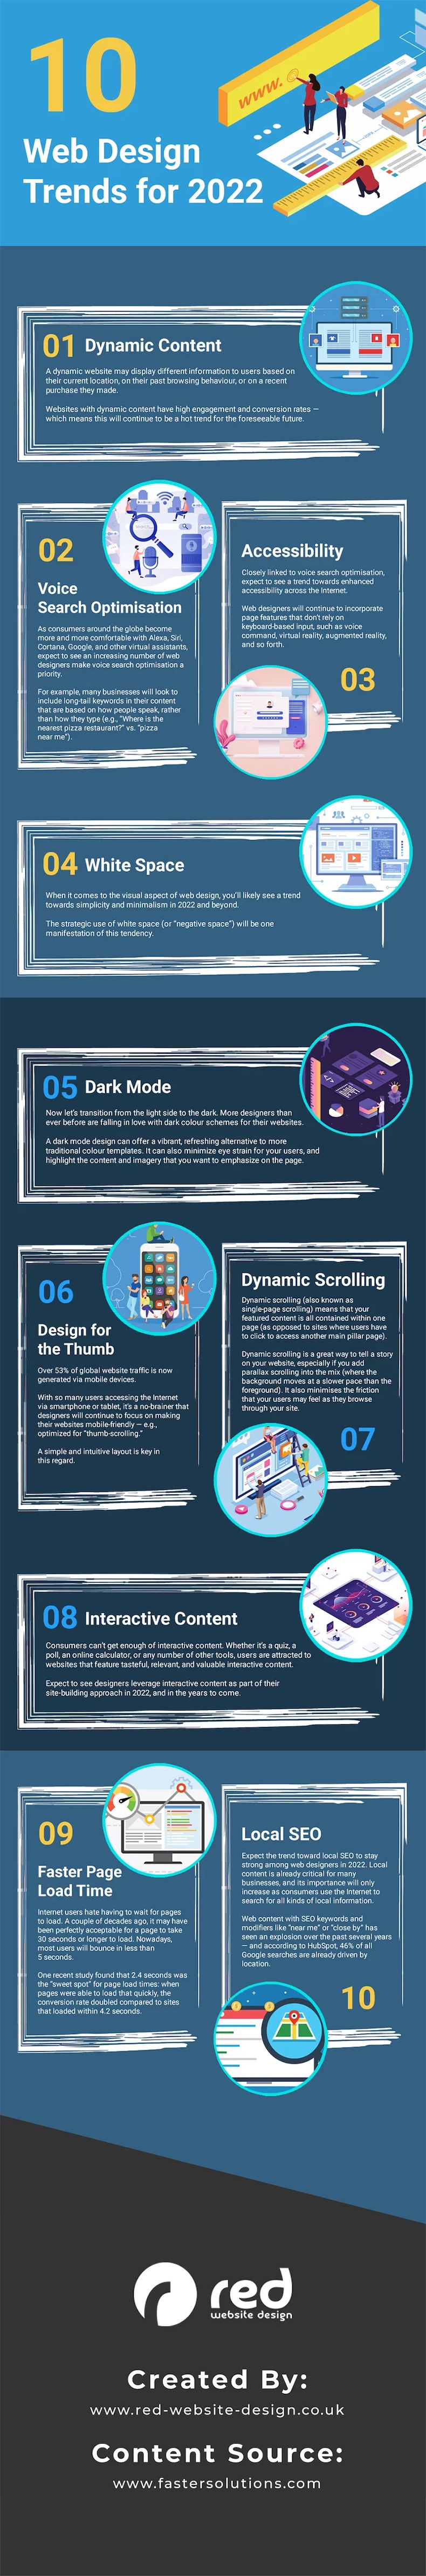 10 web design trends for 2022 infographic